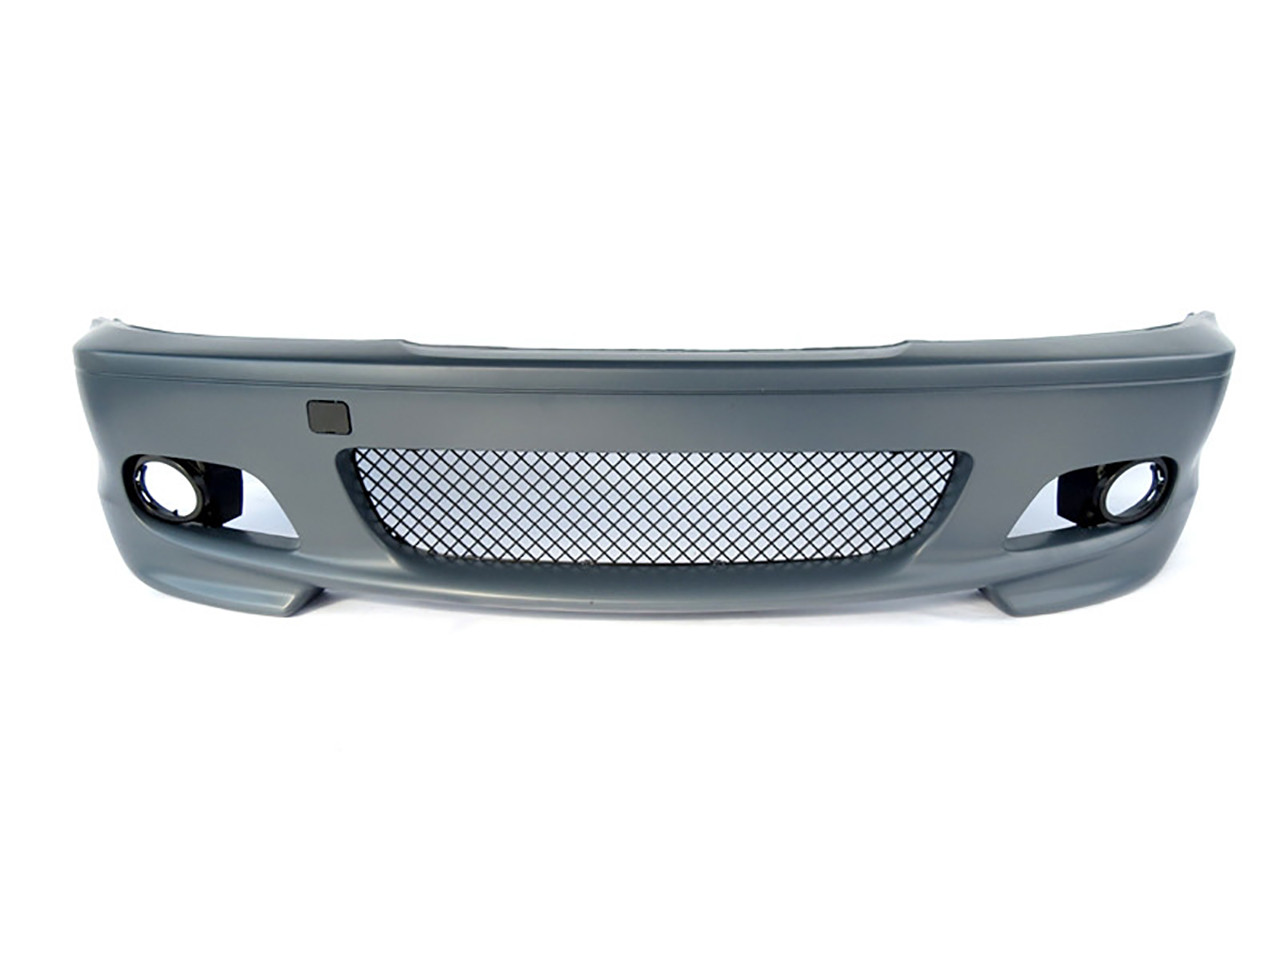 Bara fata BMW Seria 3 E46 Coupe/ Cabrio (99-05) M-Tech Design